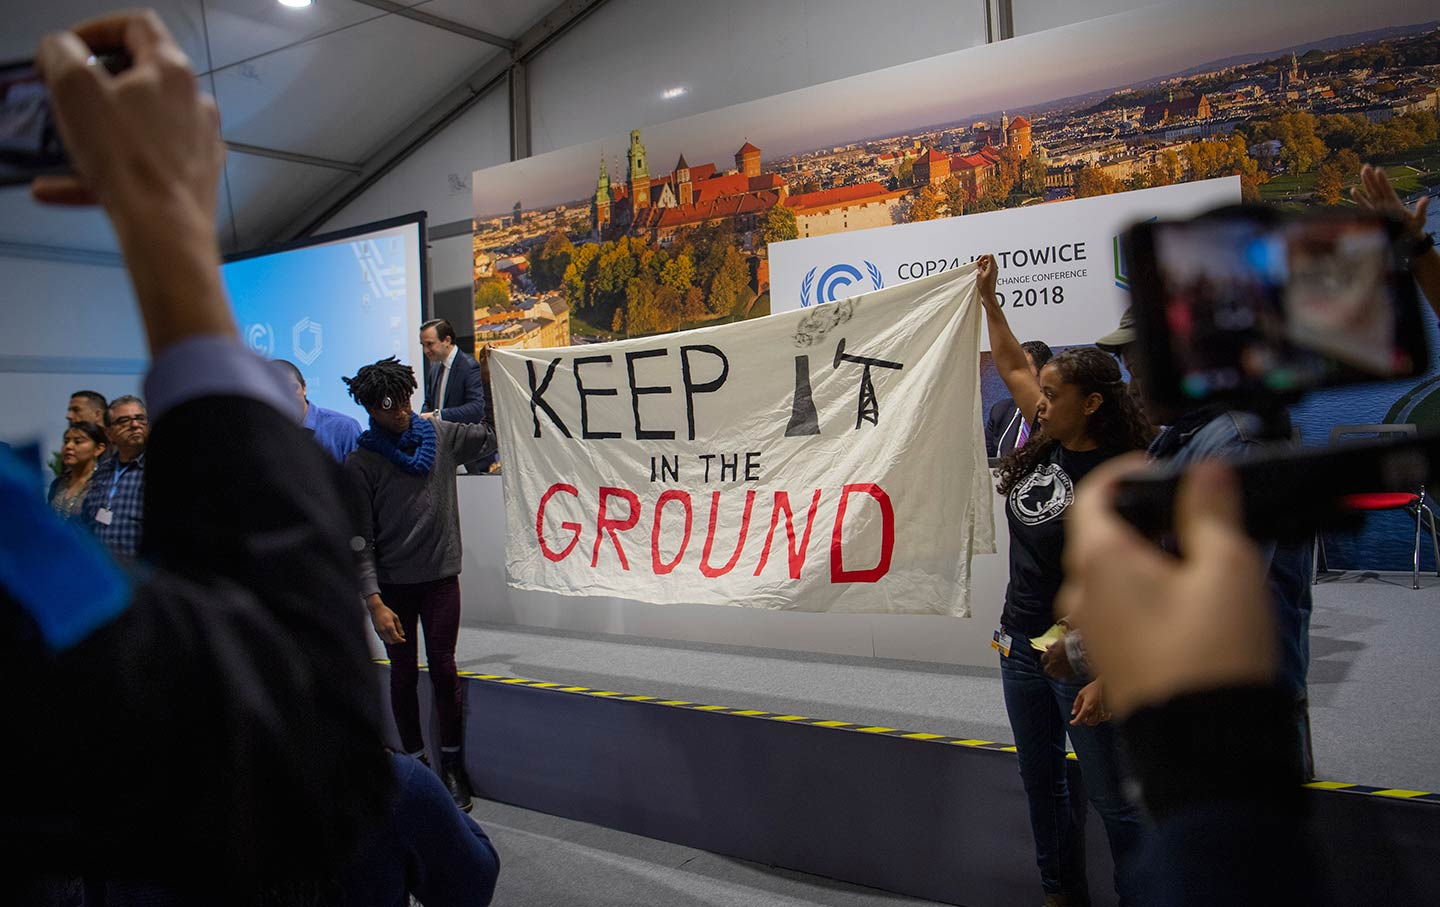 The Poland Climate Conference Is Awash in Corporate Meddling